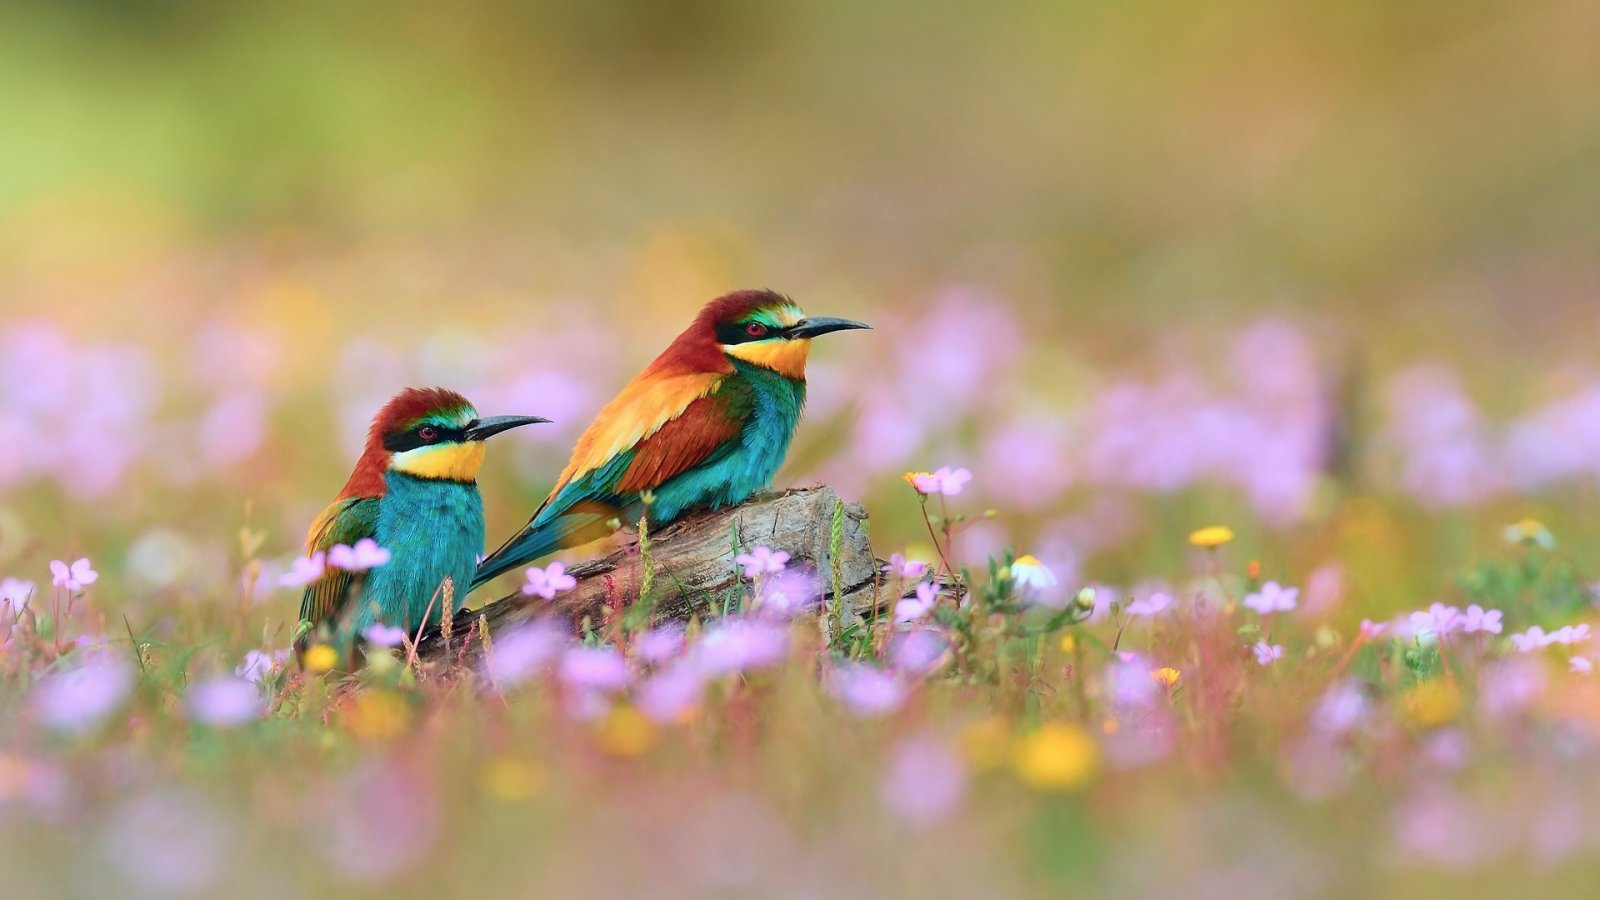 flowers for flower lovers.: Flowers and birds desktop wallpapers.